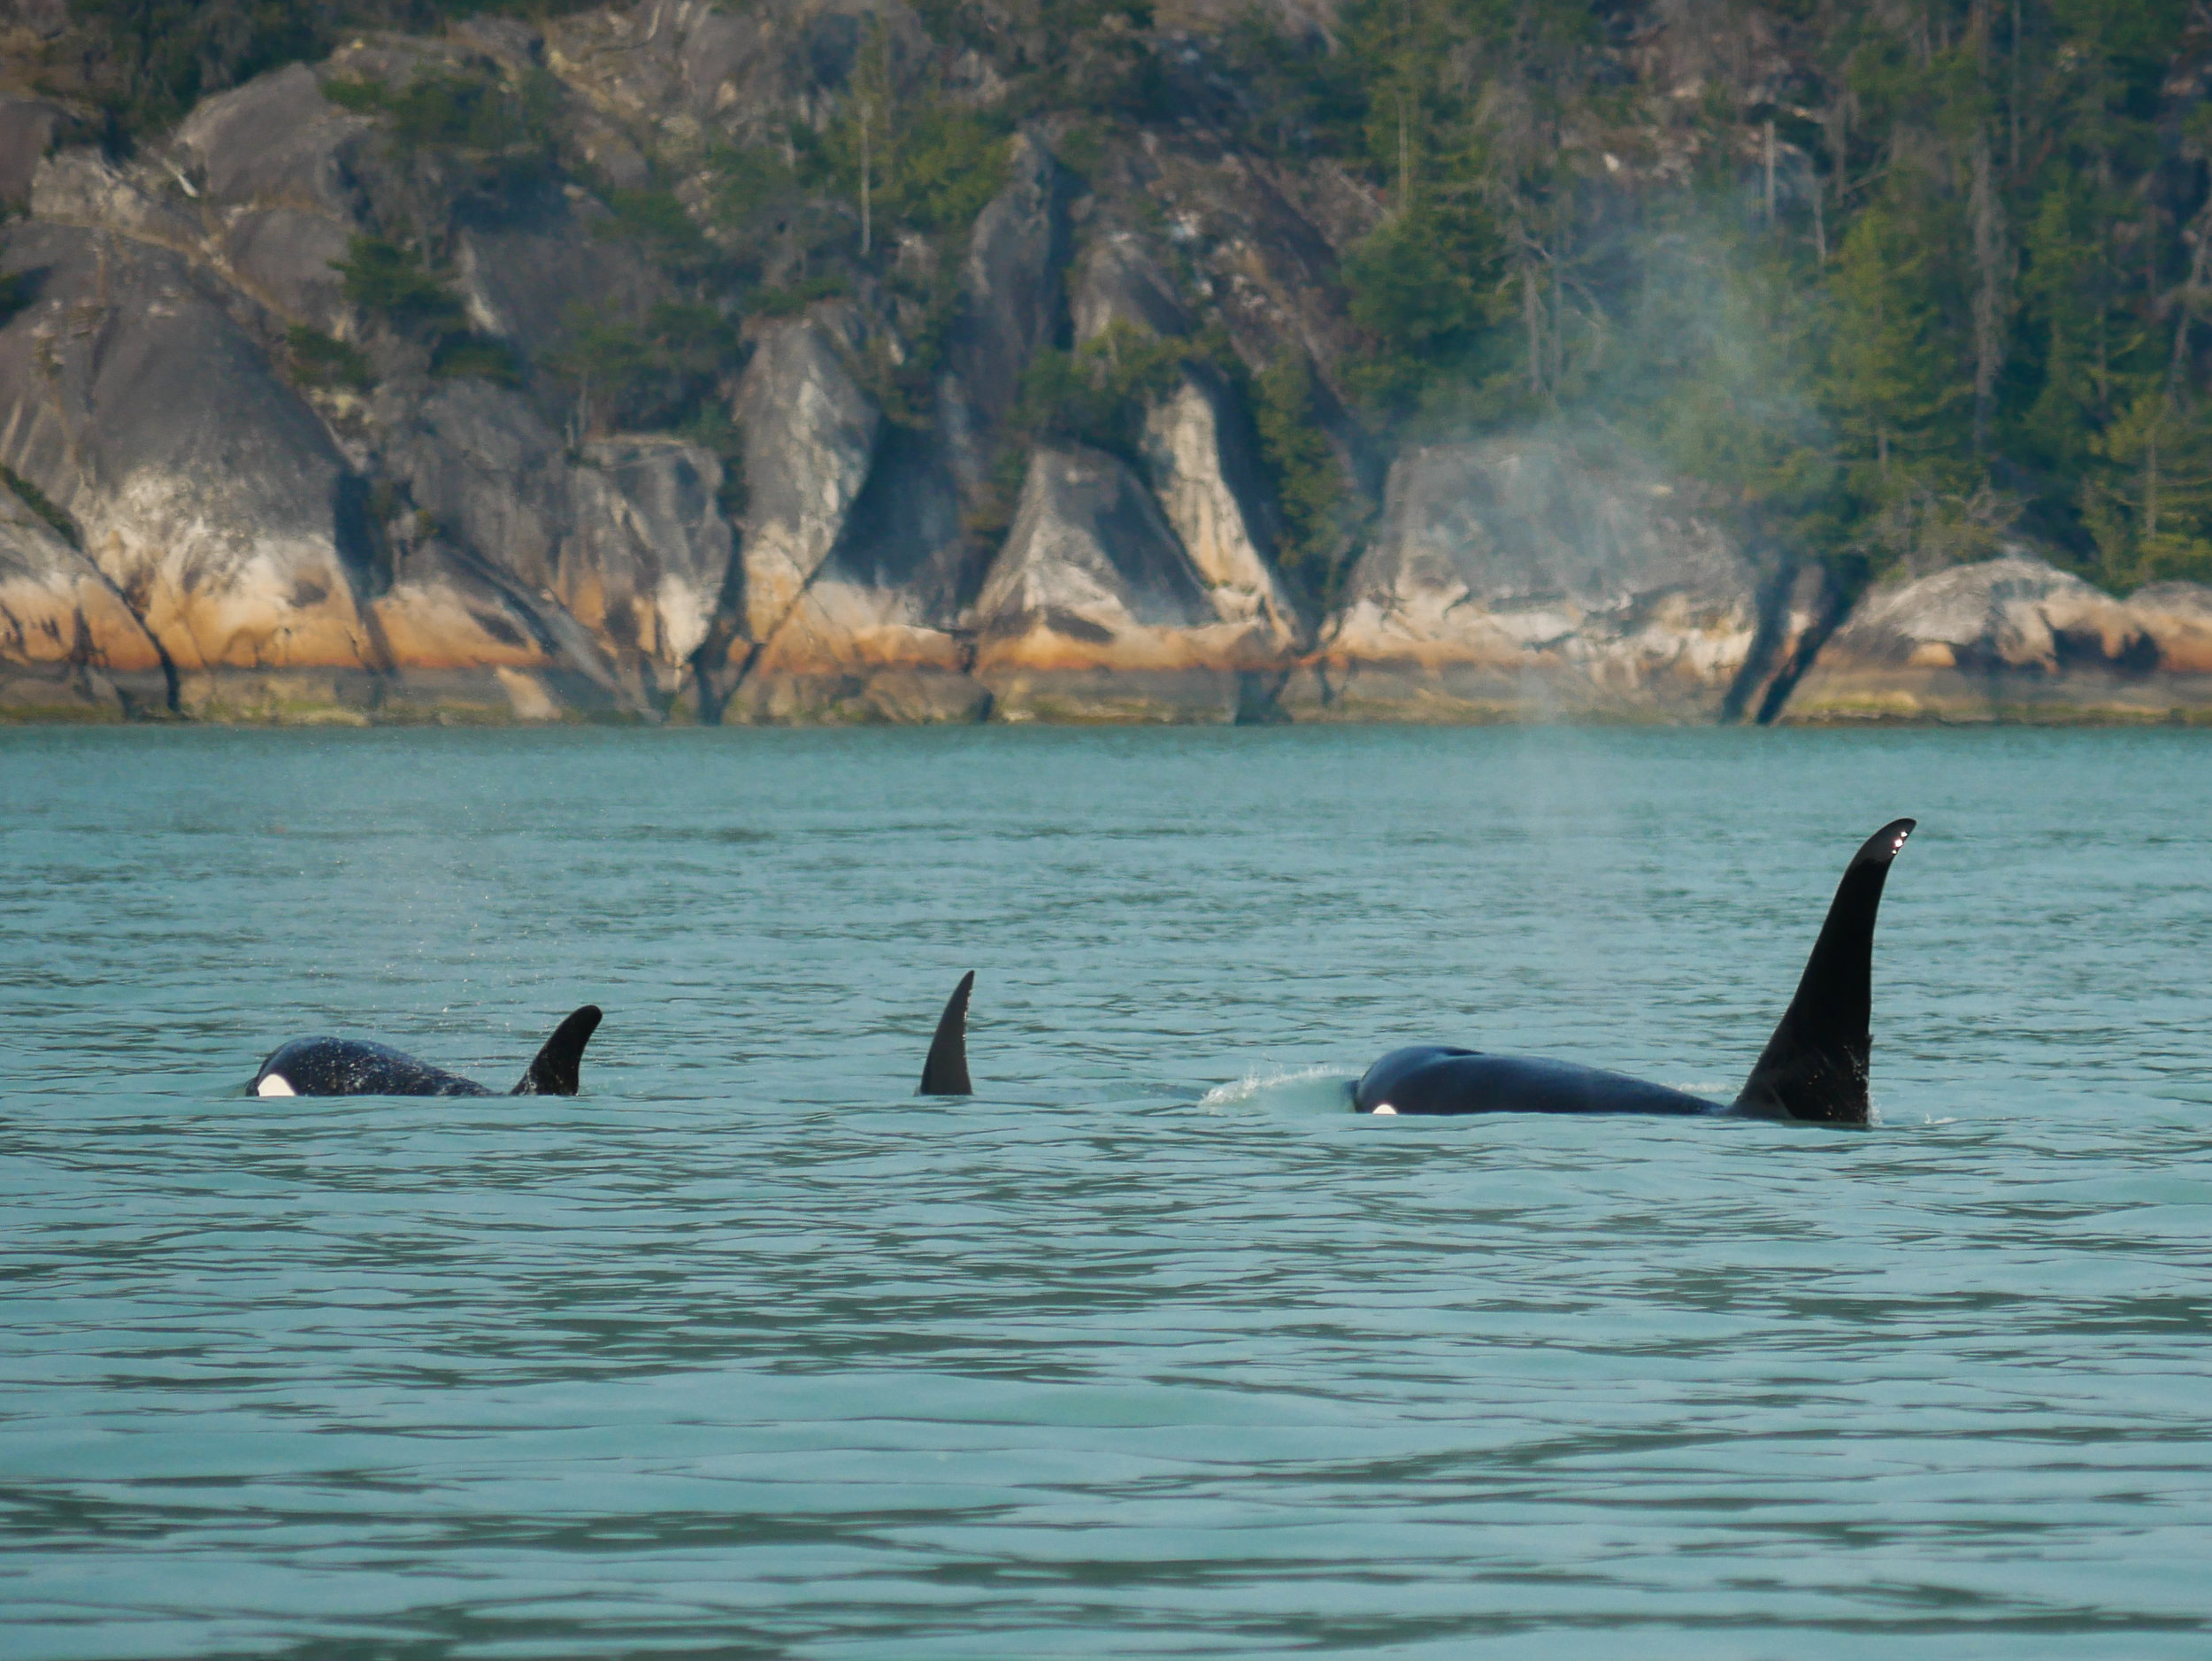 T46E (far right) and two other members surfacing in Howe Sound. Photo by Alanna Vivani.